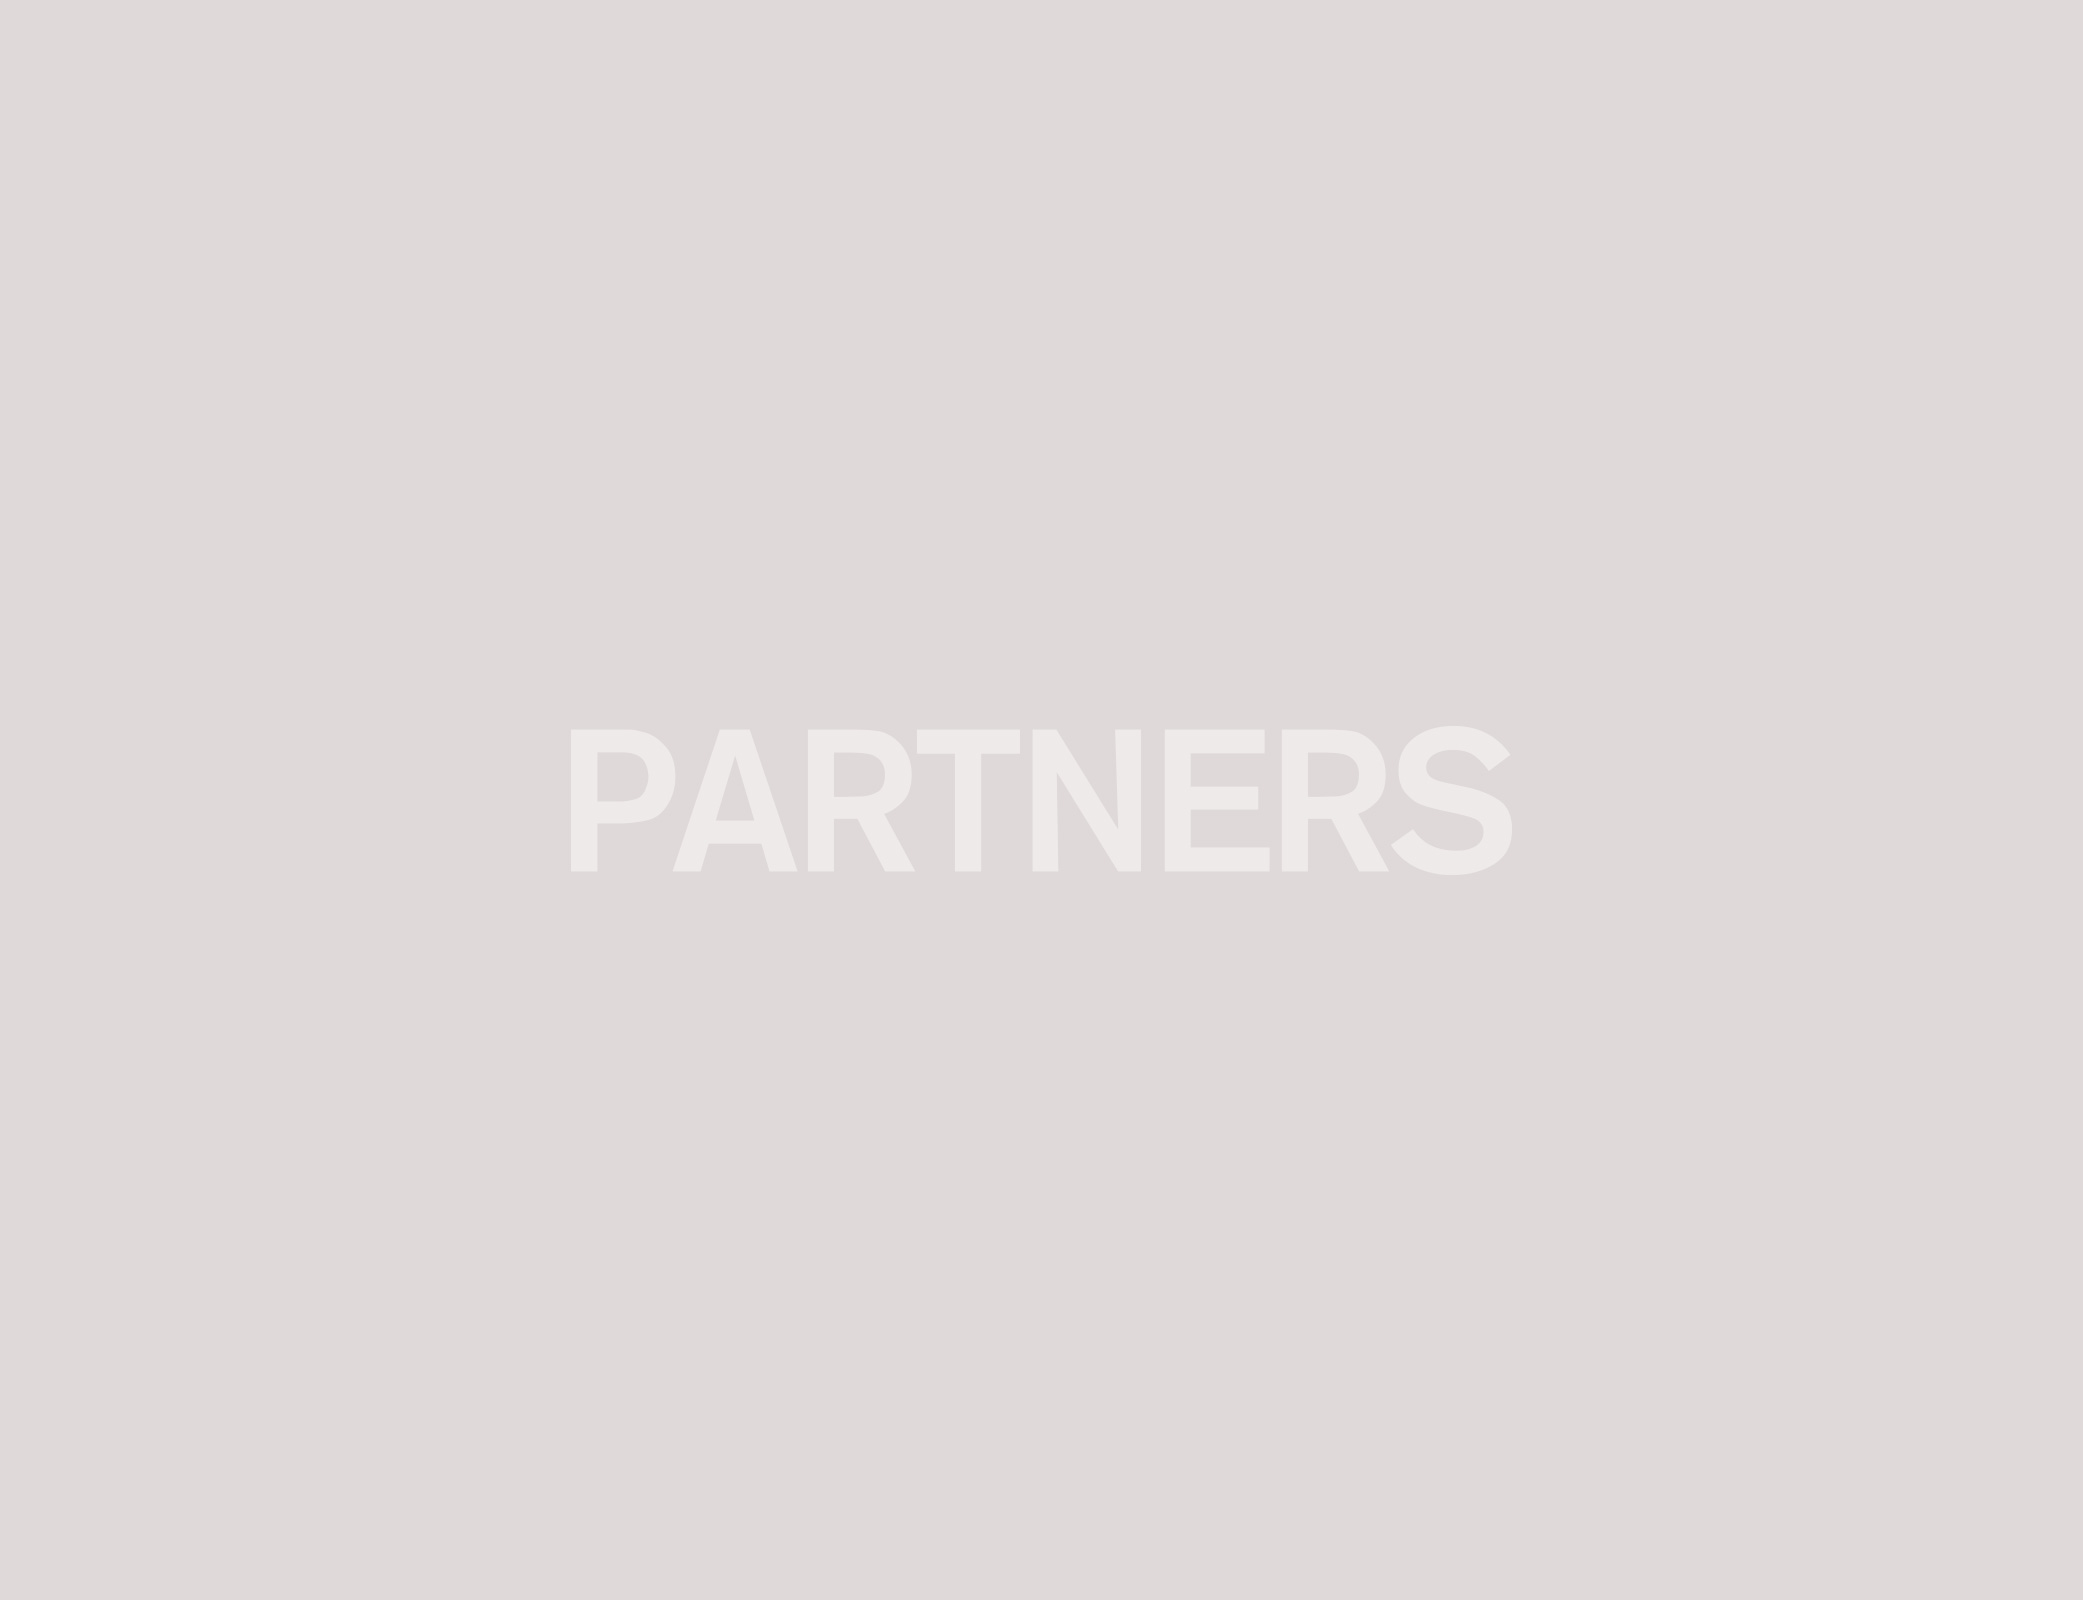 home_Partners_graybox-d